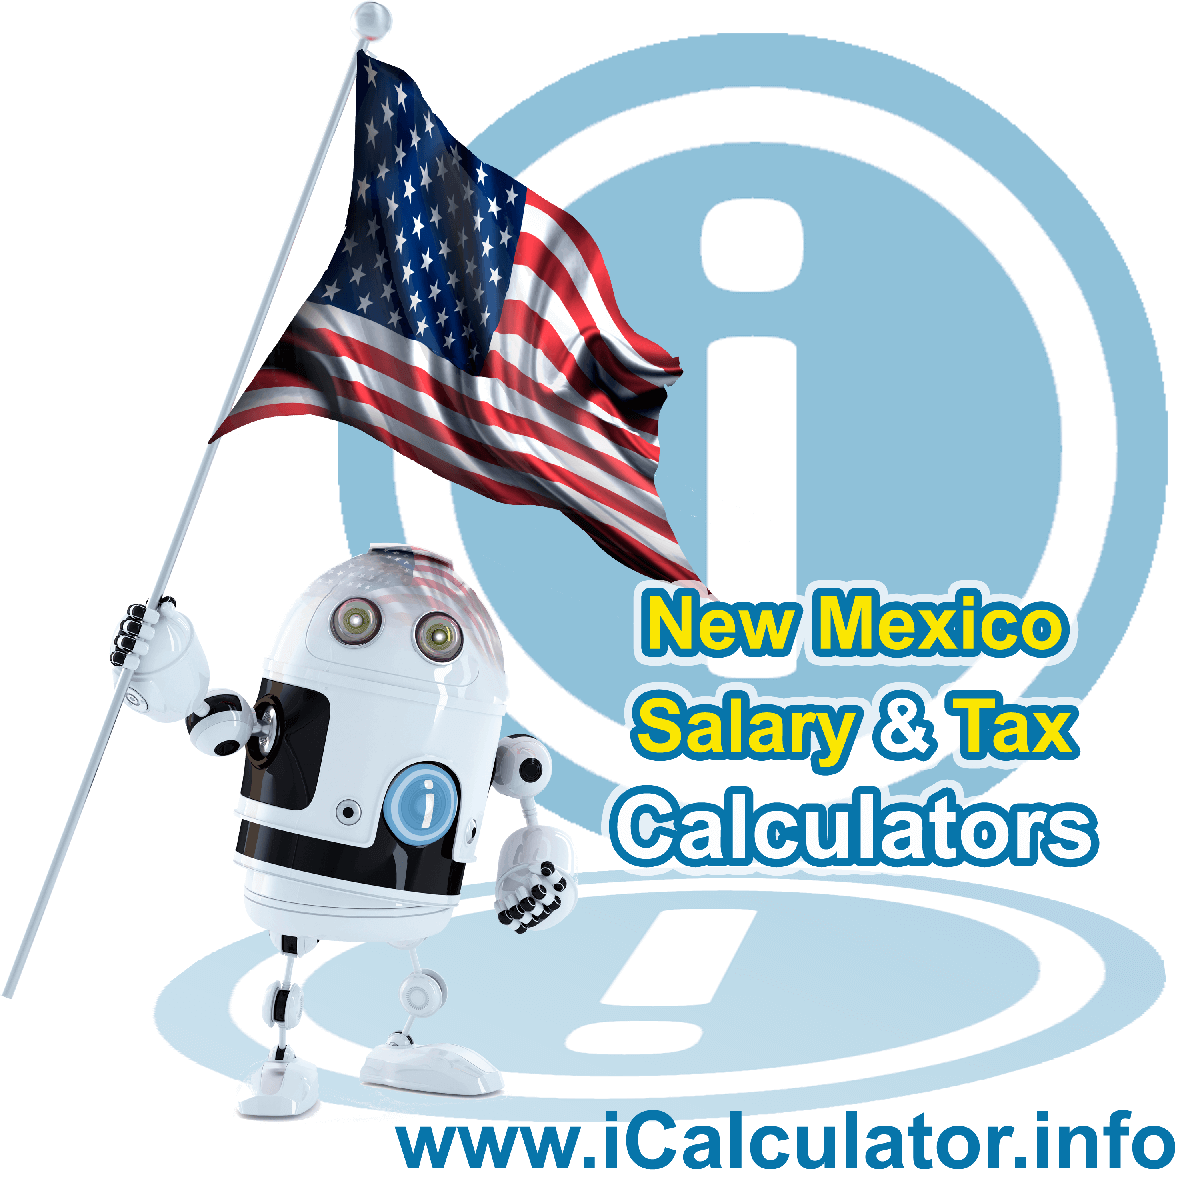 New Mexico Salary Calculator 2019 | iCalculator | The New Mexico Salary Calculator allows you to quickly calculate your salary after tax including New Mexico State Tax, Federal State Tax, Medicare Deductions, Social Security, Capital Gains and other income tax and salary deductions complete with supporting New Mexico state tax tables